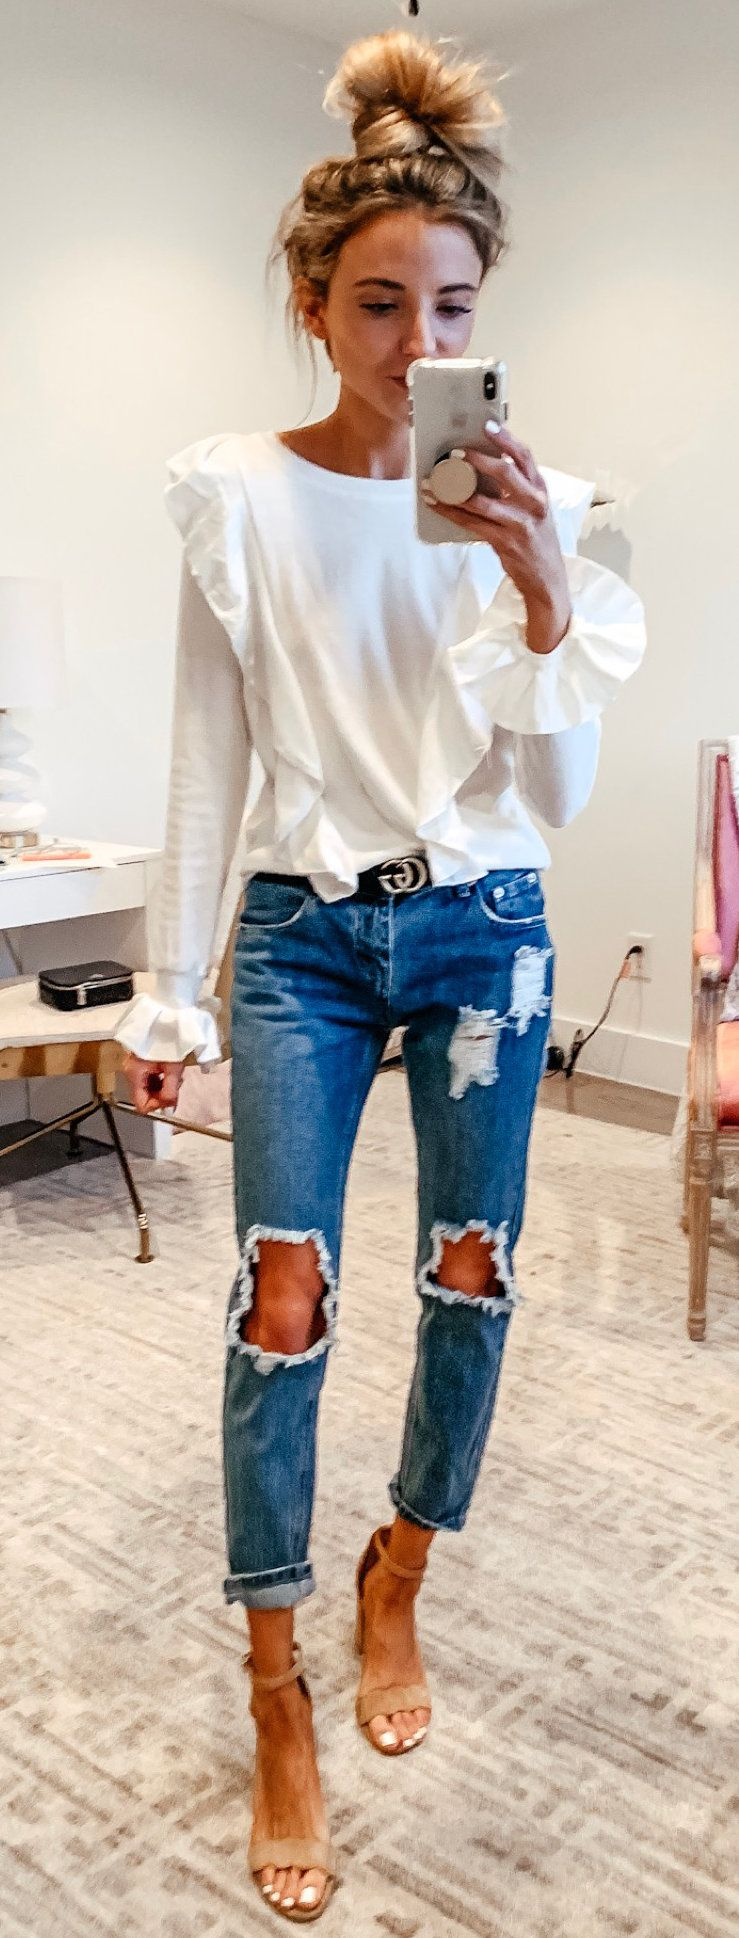 white long-sleeved ruffled shirt and distressed blue denim fitted jeans #spring #outfits